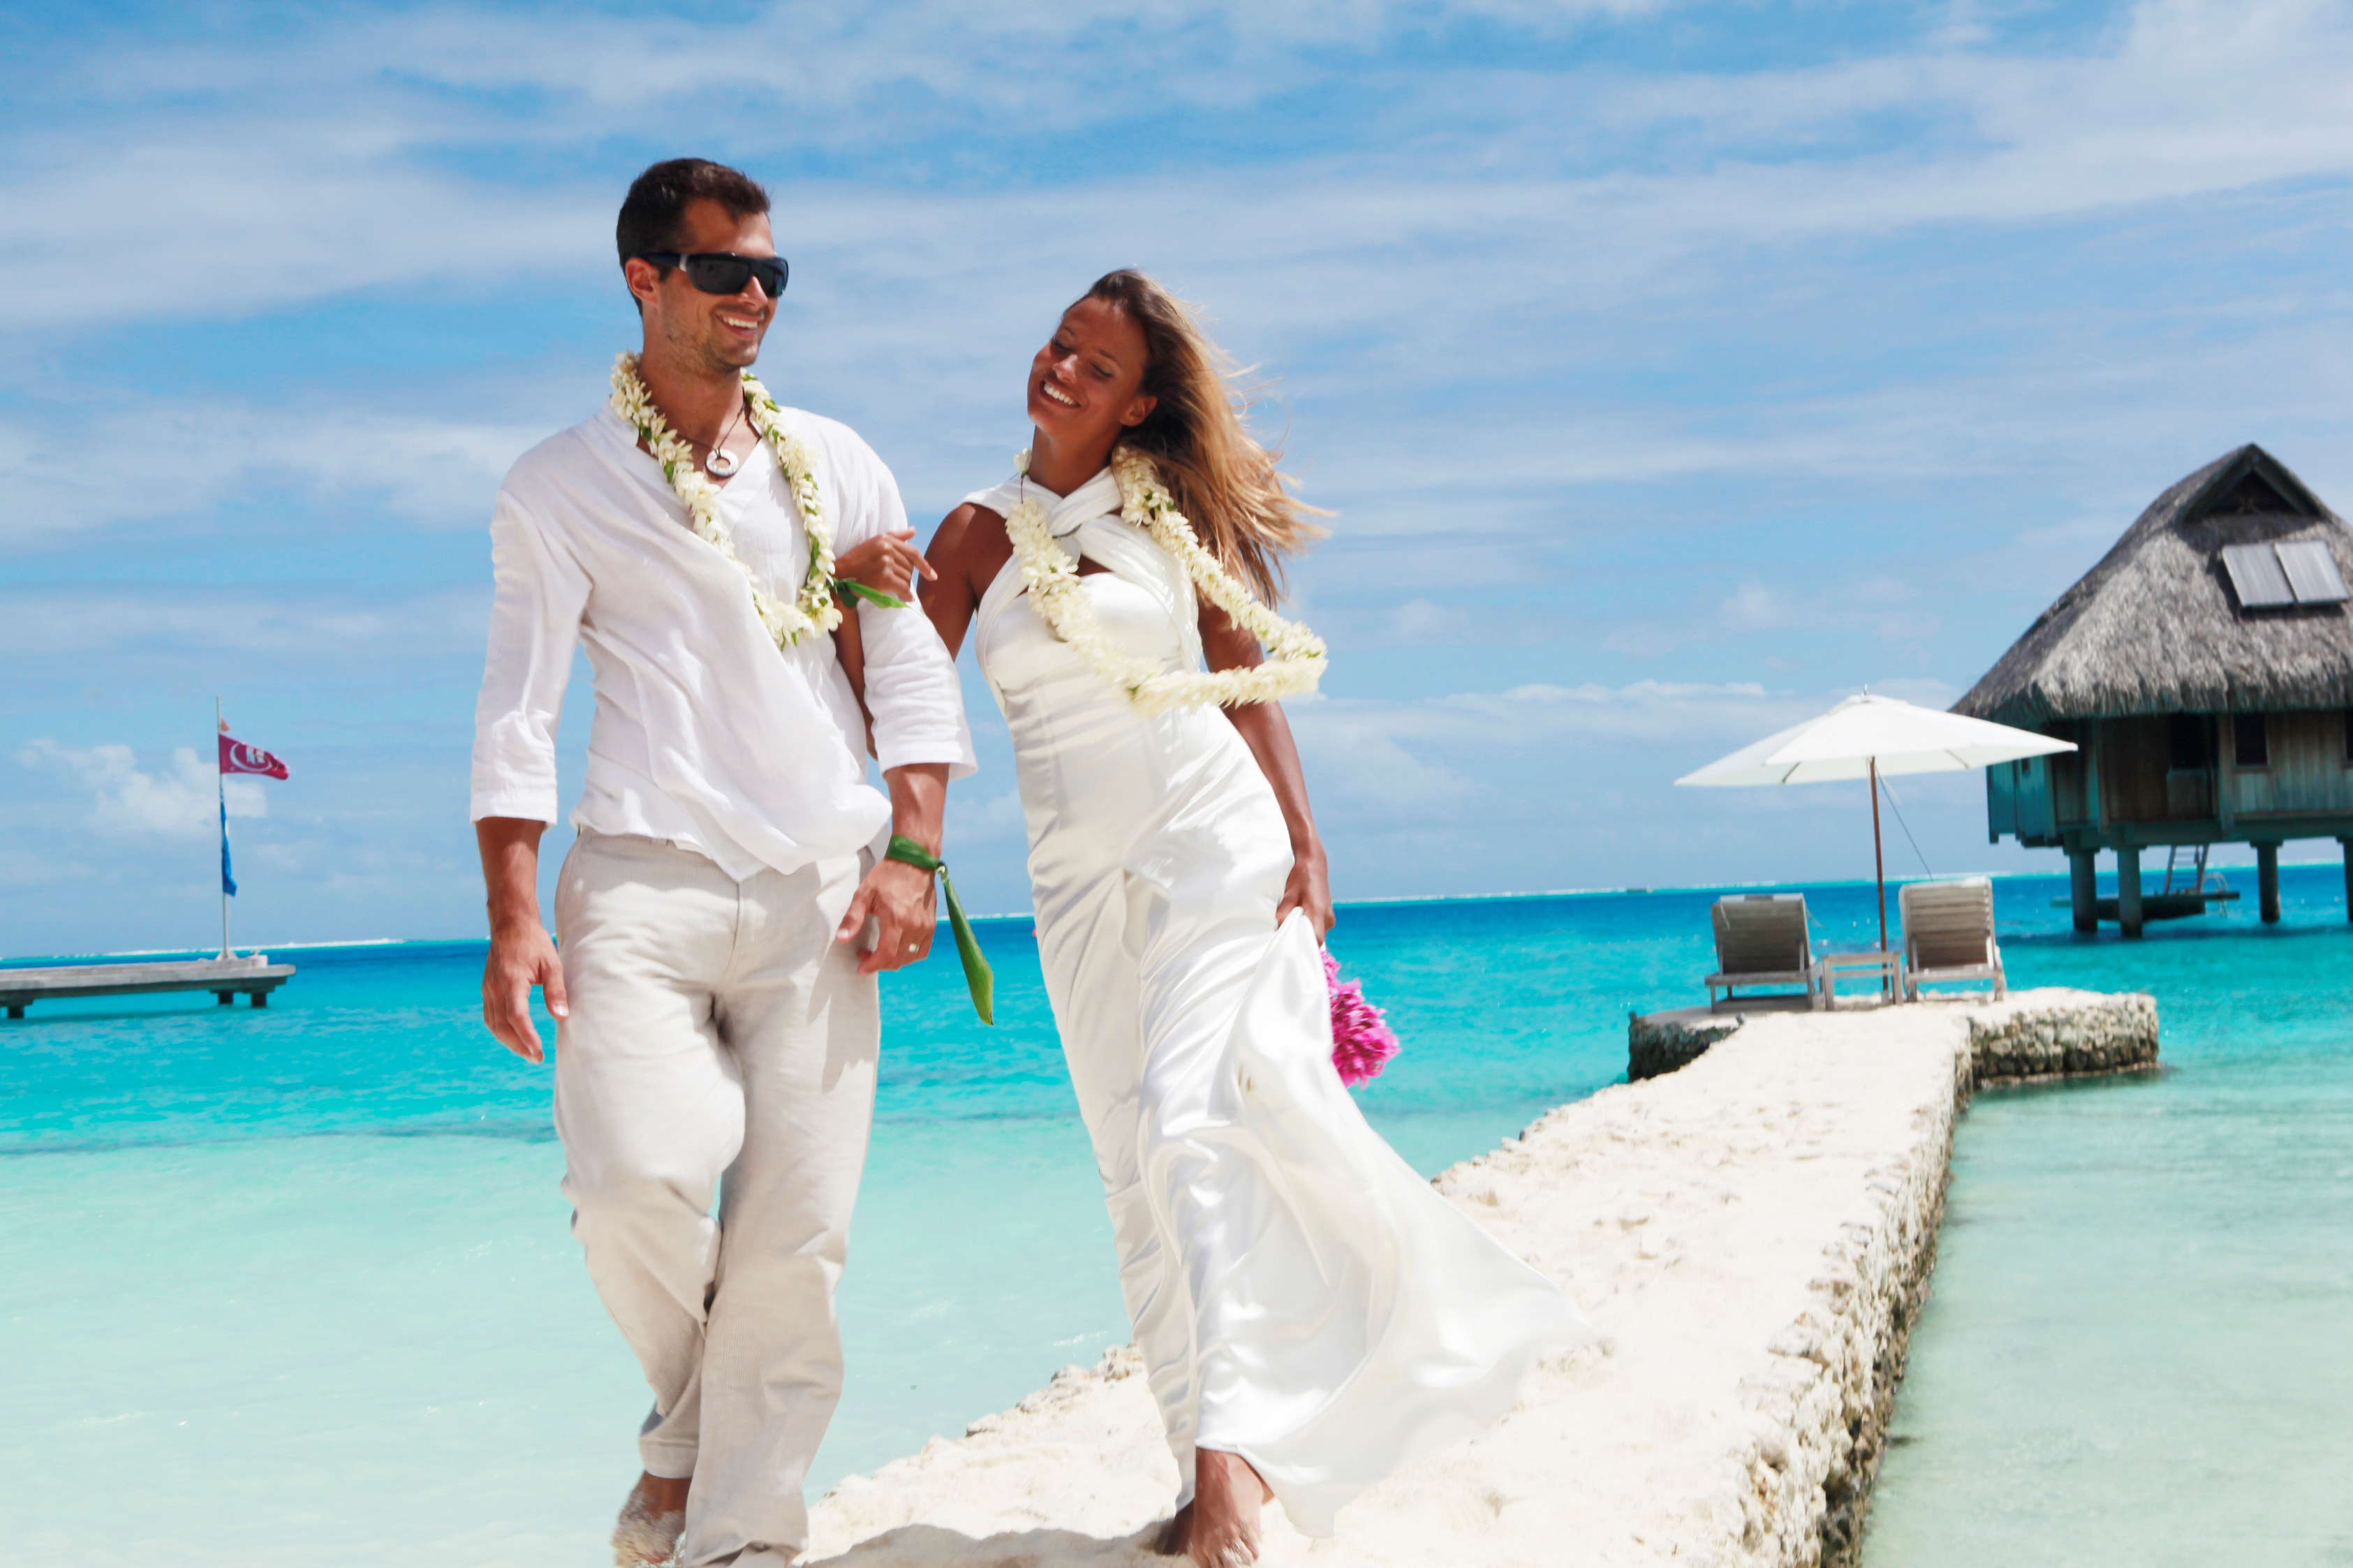 Hilton_Bora_wedding